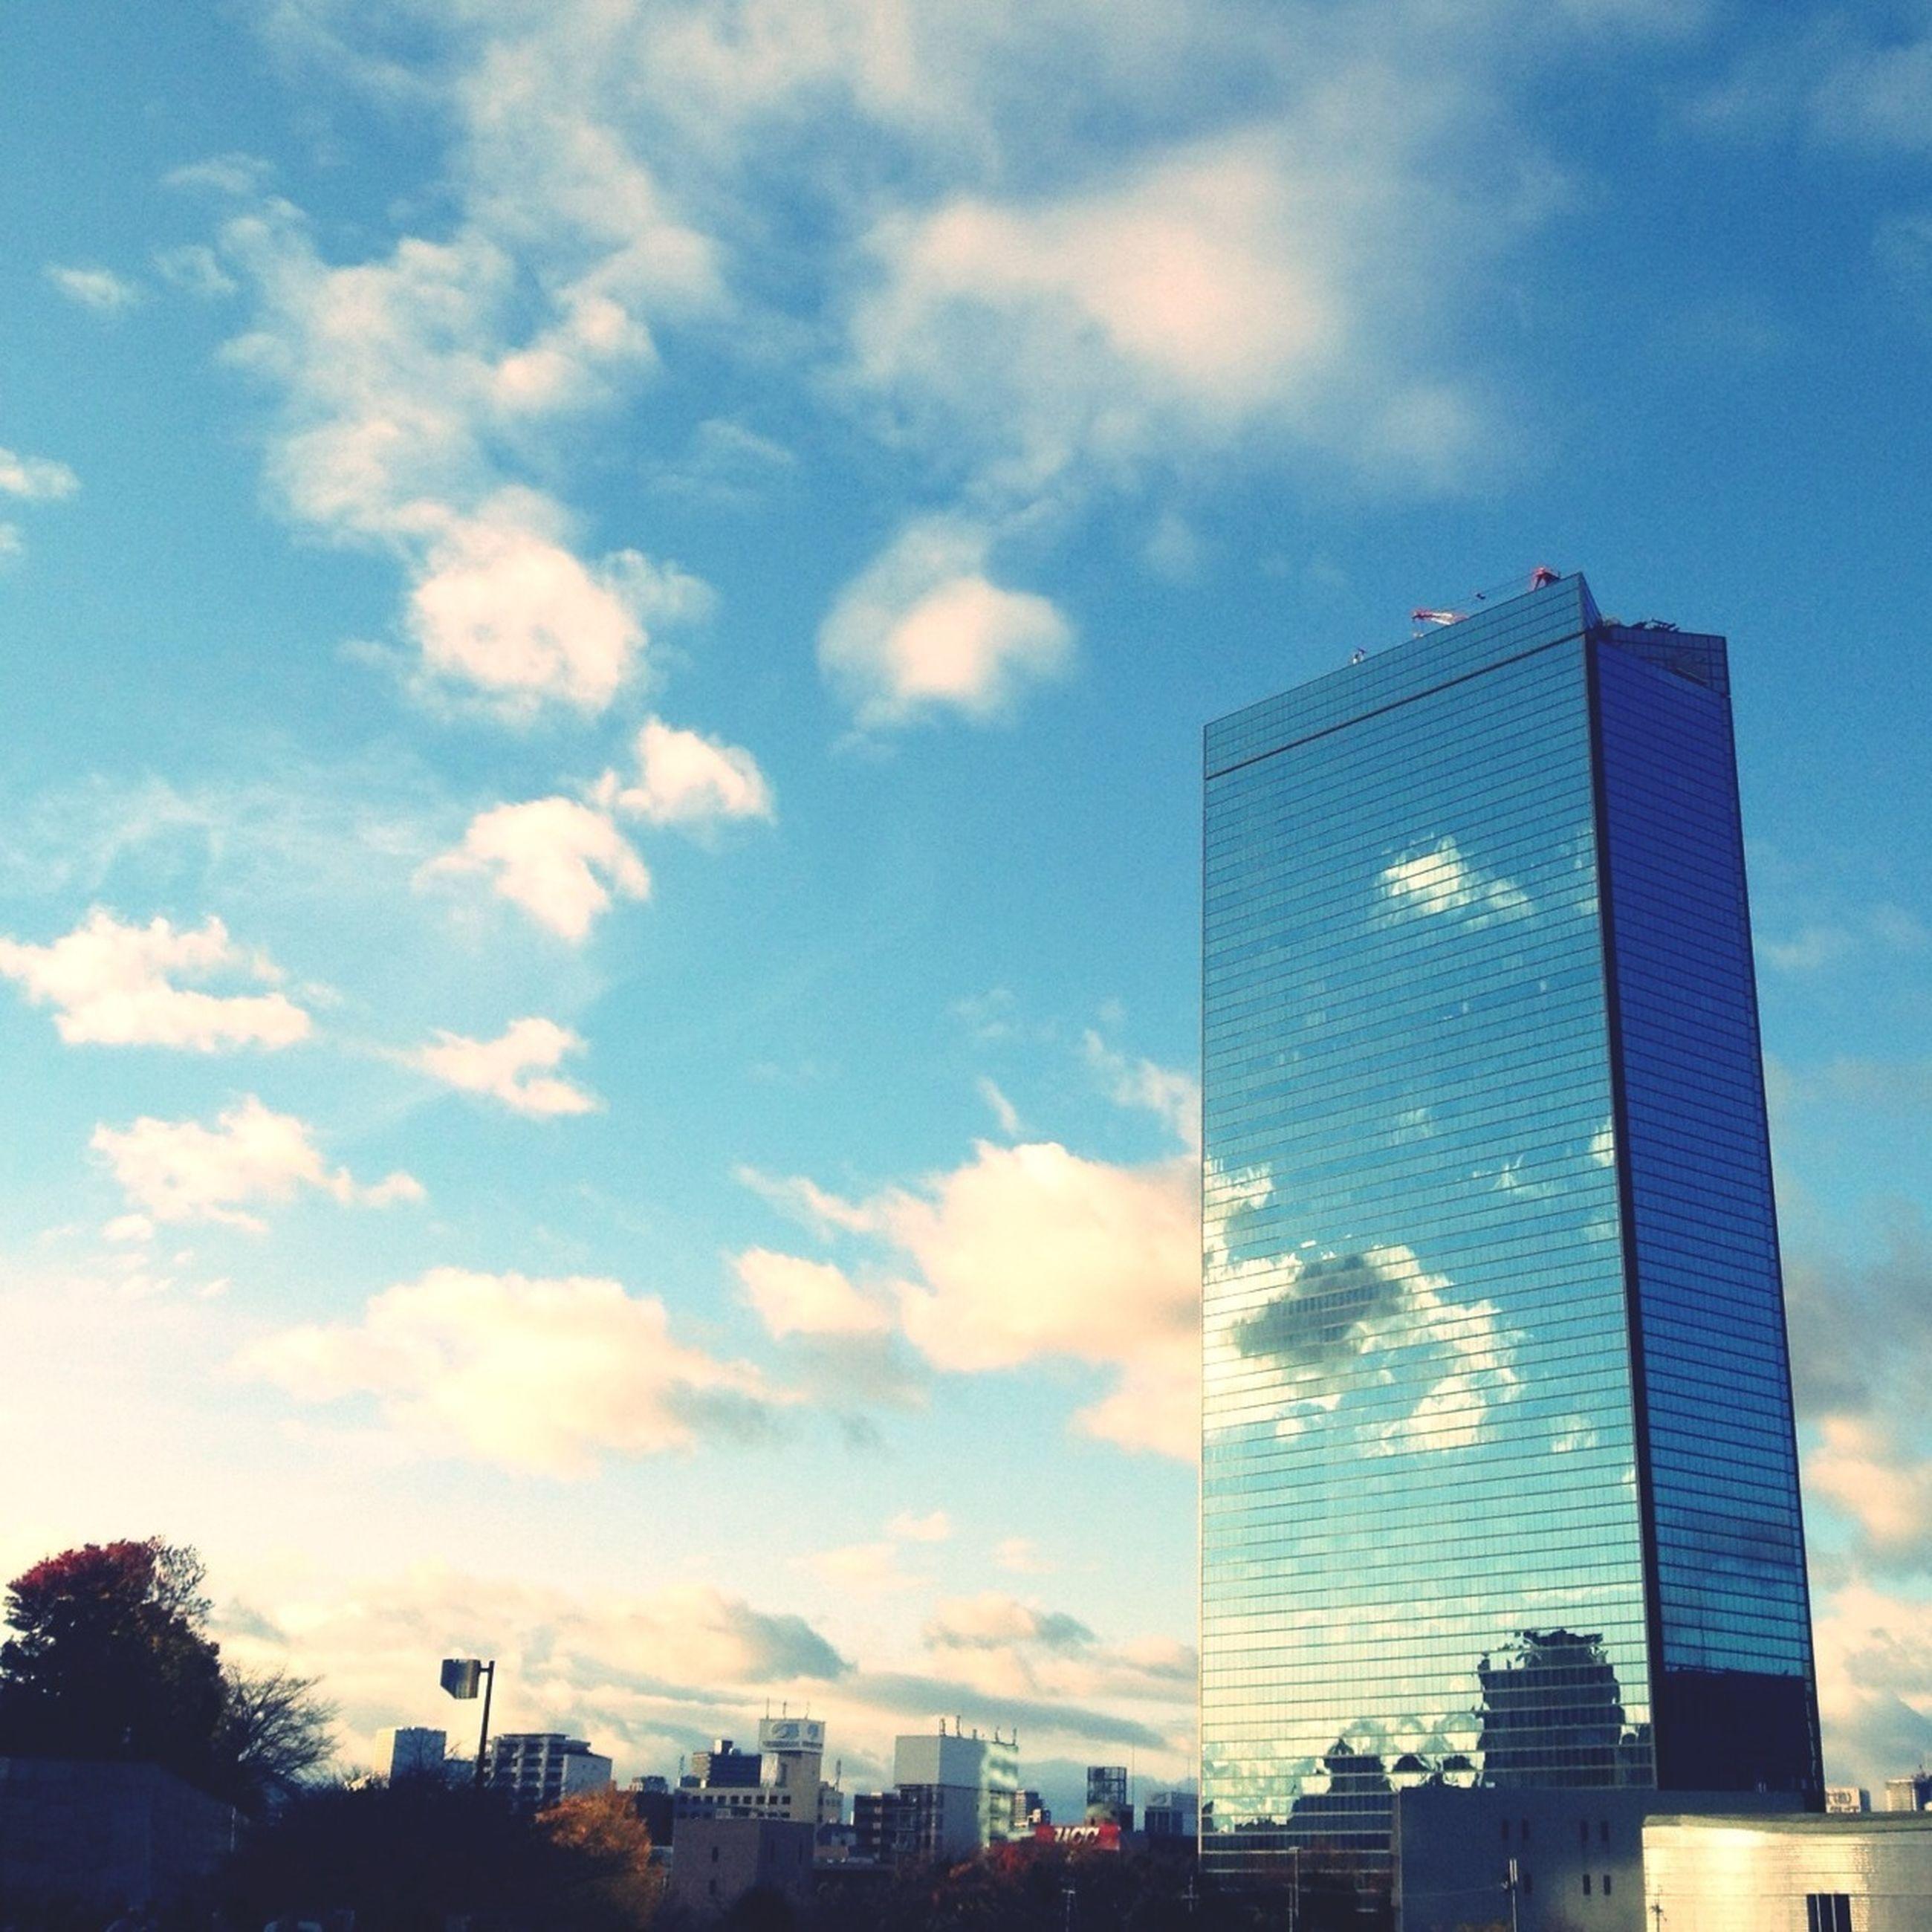 architecture, built structure, building exterior, sky, city, low angle view, skyscraper, cloud - sky, modern, office building, building, cloud, tall - high, sunset, tower, sunlight, silhouette, outdoors, tree, no people